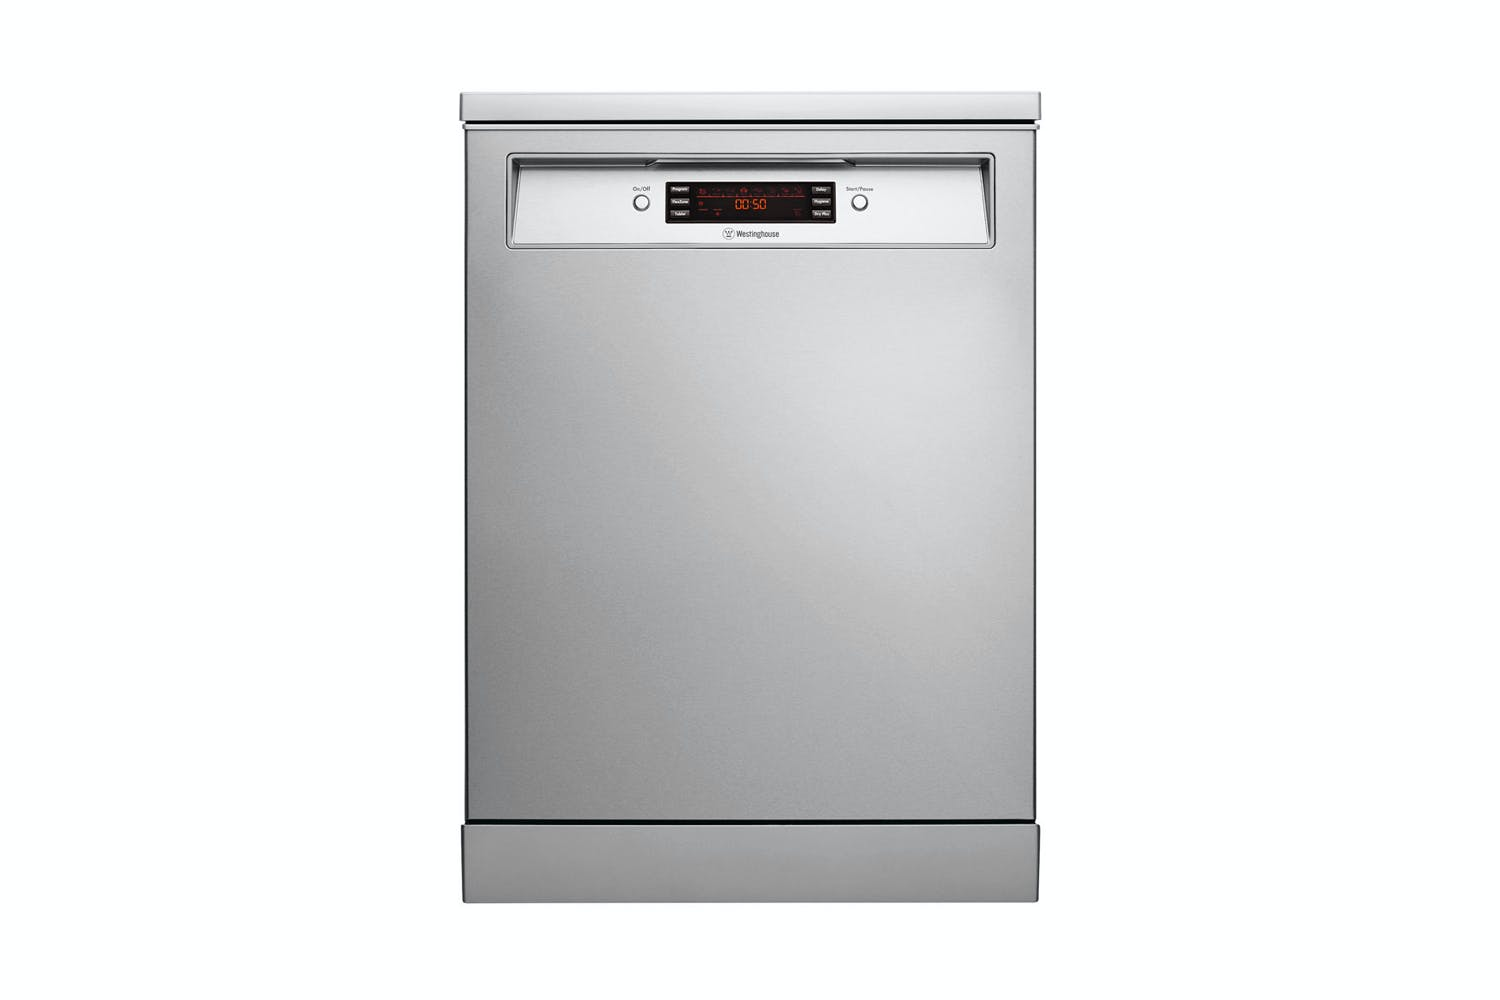 Westinghouse 15 place setting dishwasher stainless steel harvey norman new zealand - Westinghouse and living ...